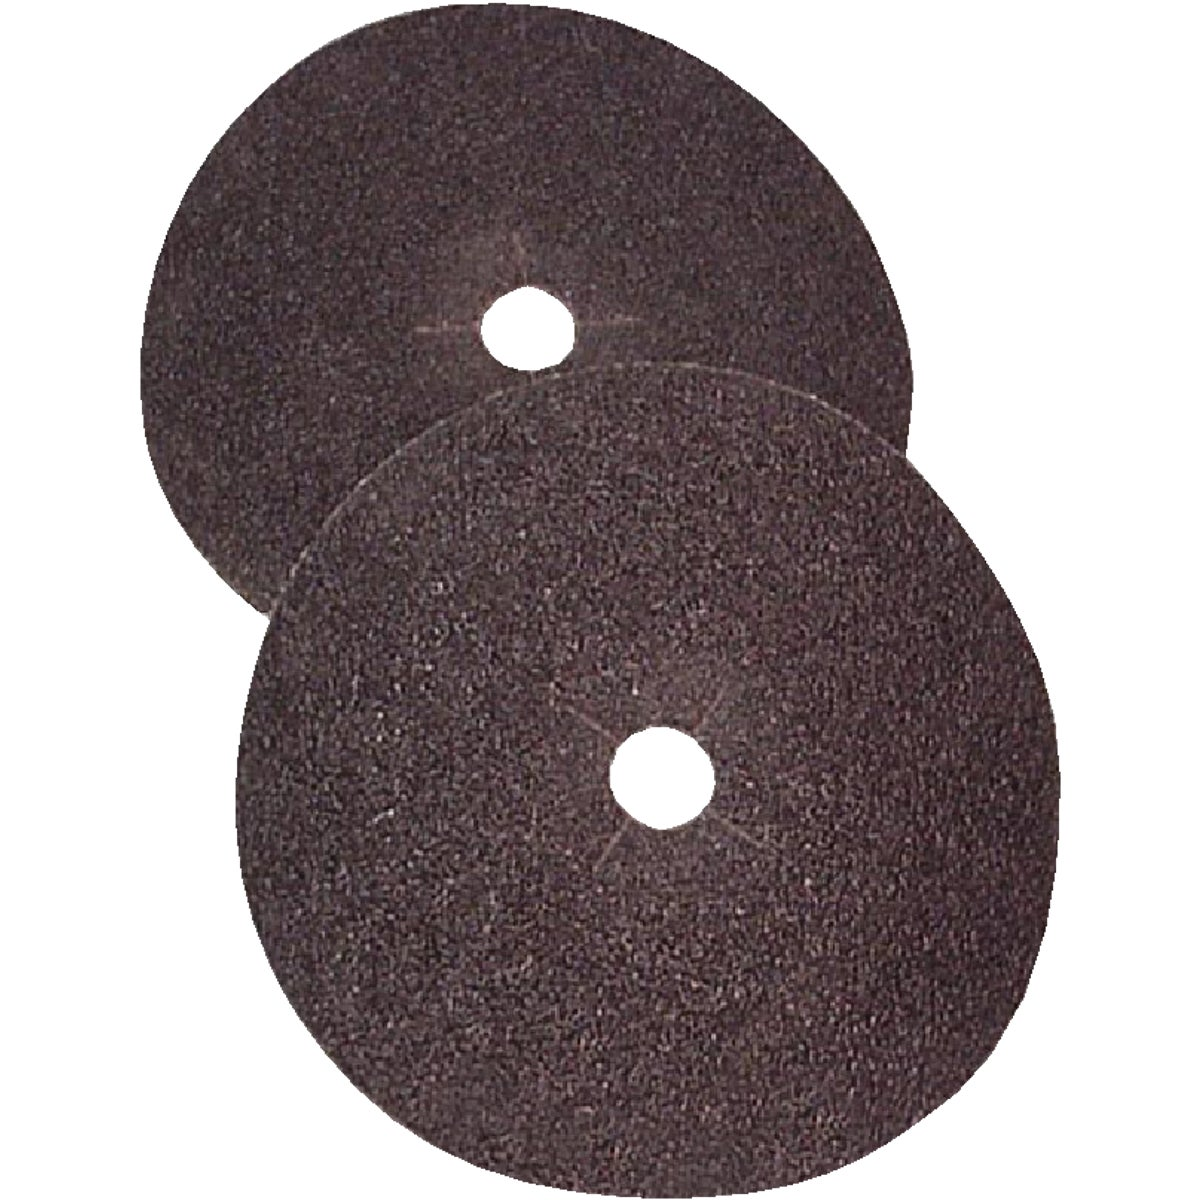 "7"" 100G FLR SANDING DISC - 006-870894 by Virginia Abrasives"